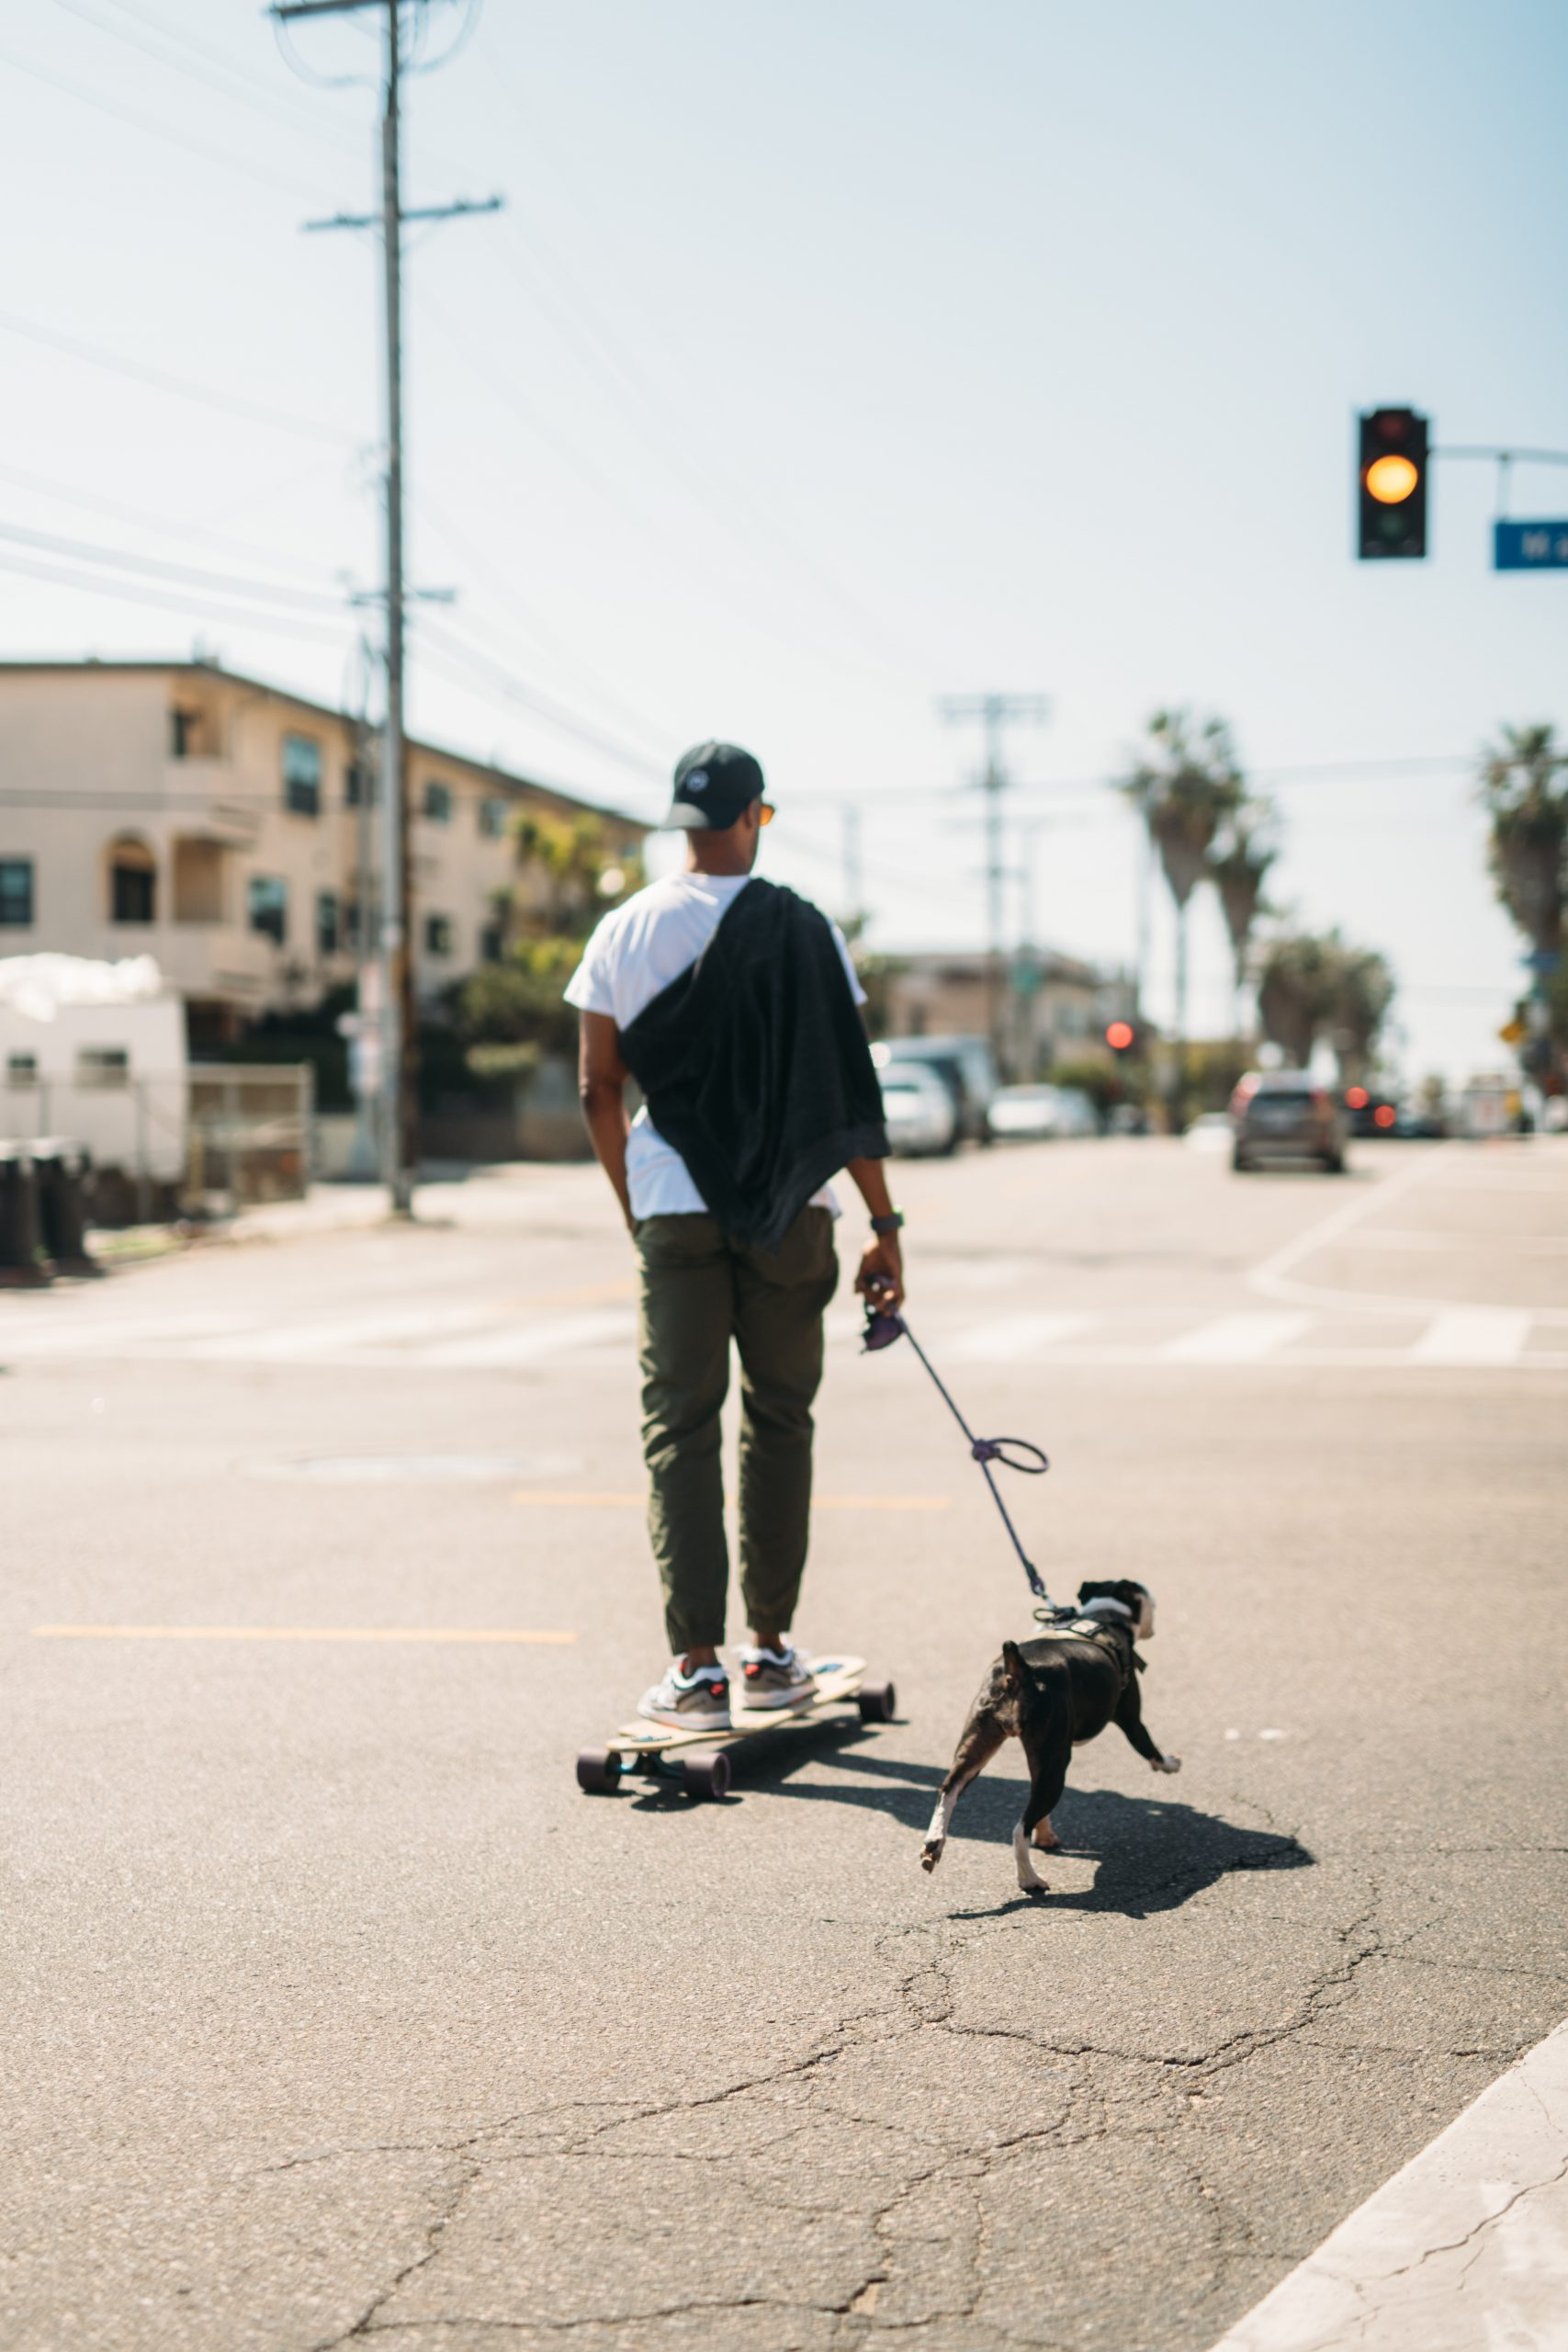 Guy walking his dog on the street